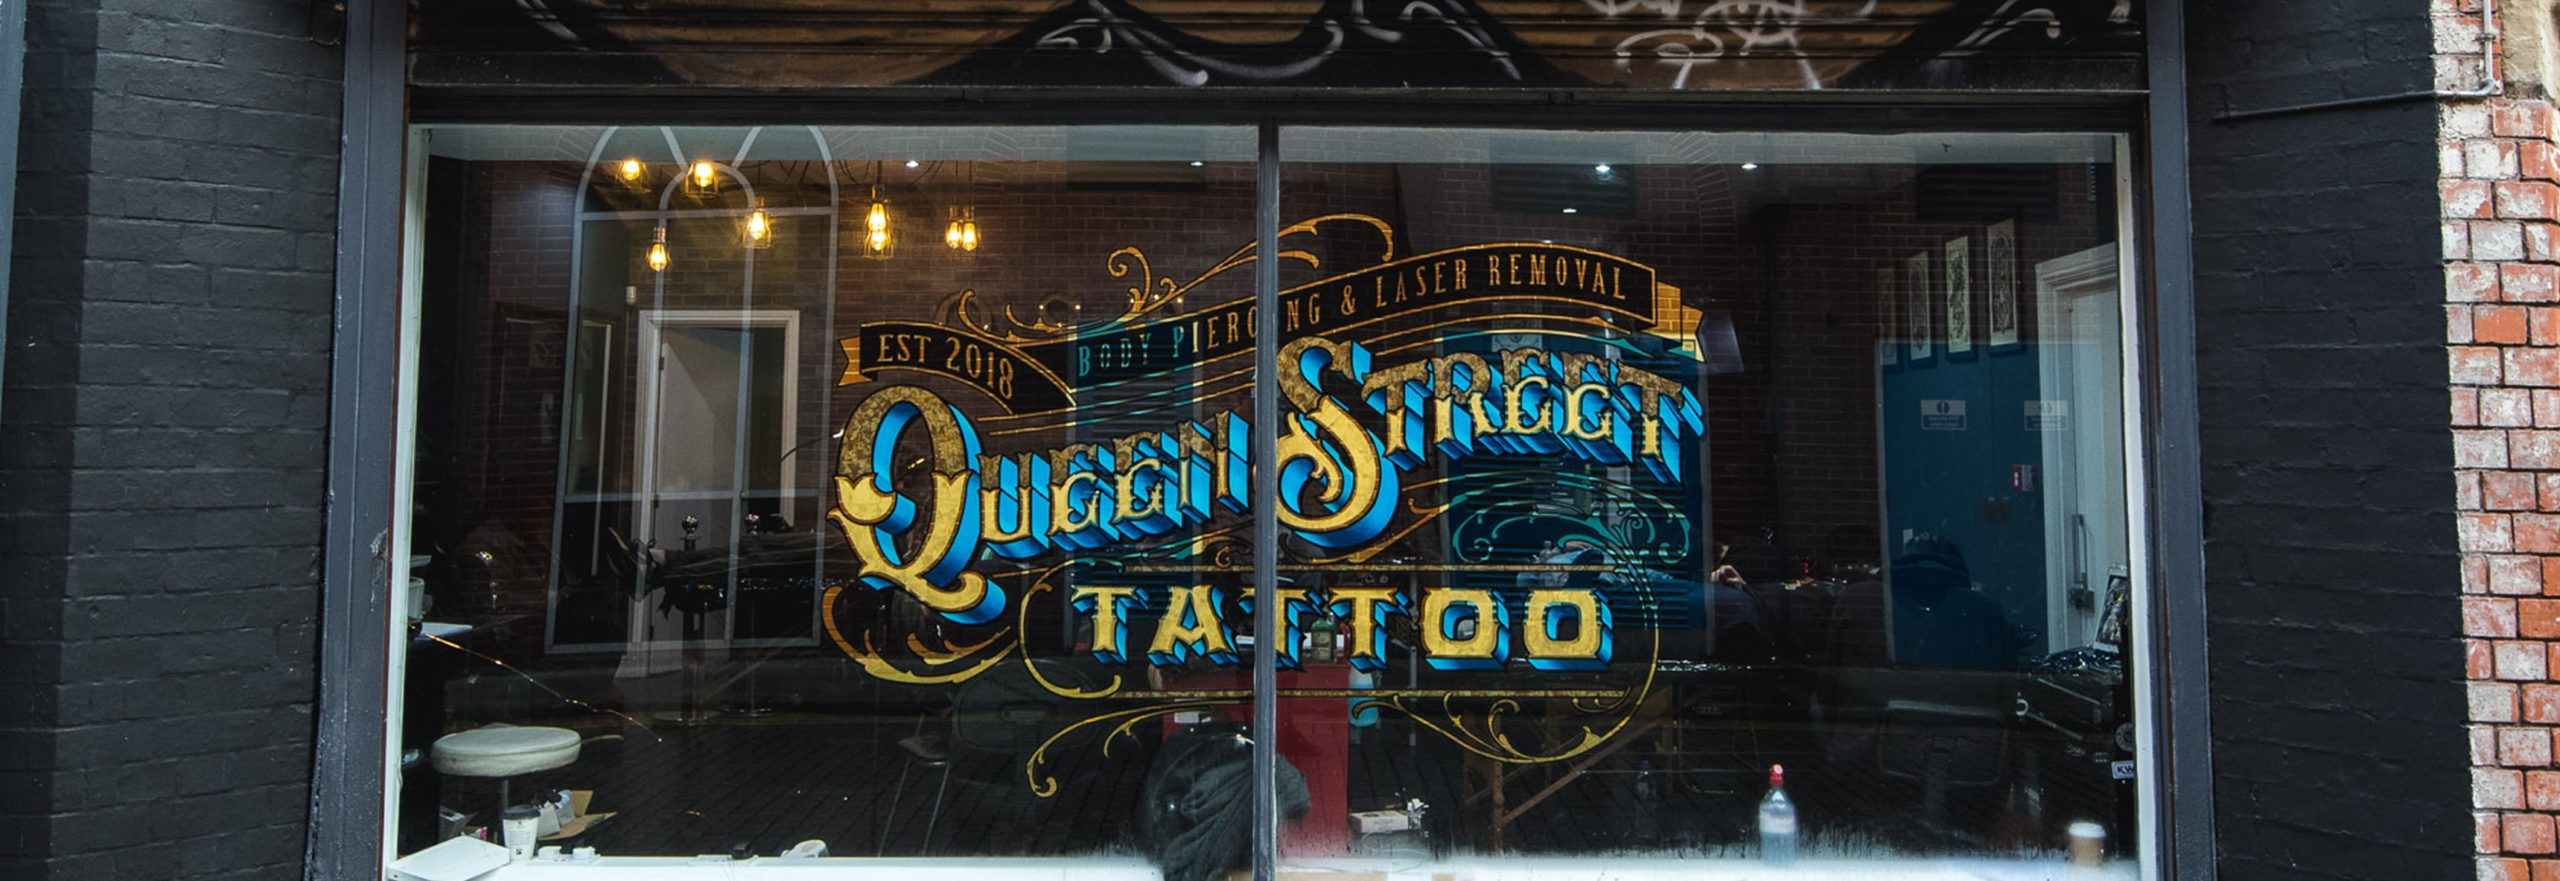 Queen Street Tattoo